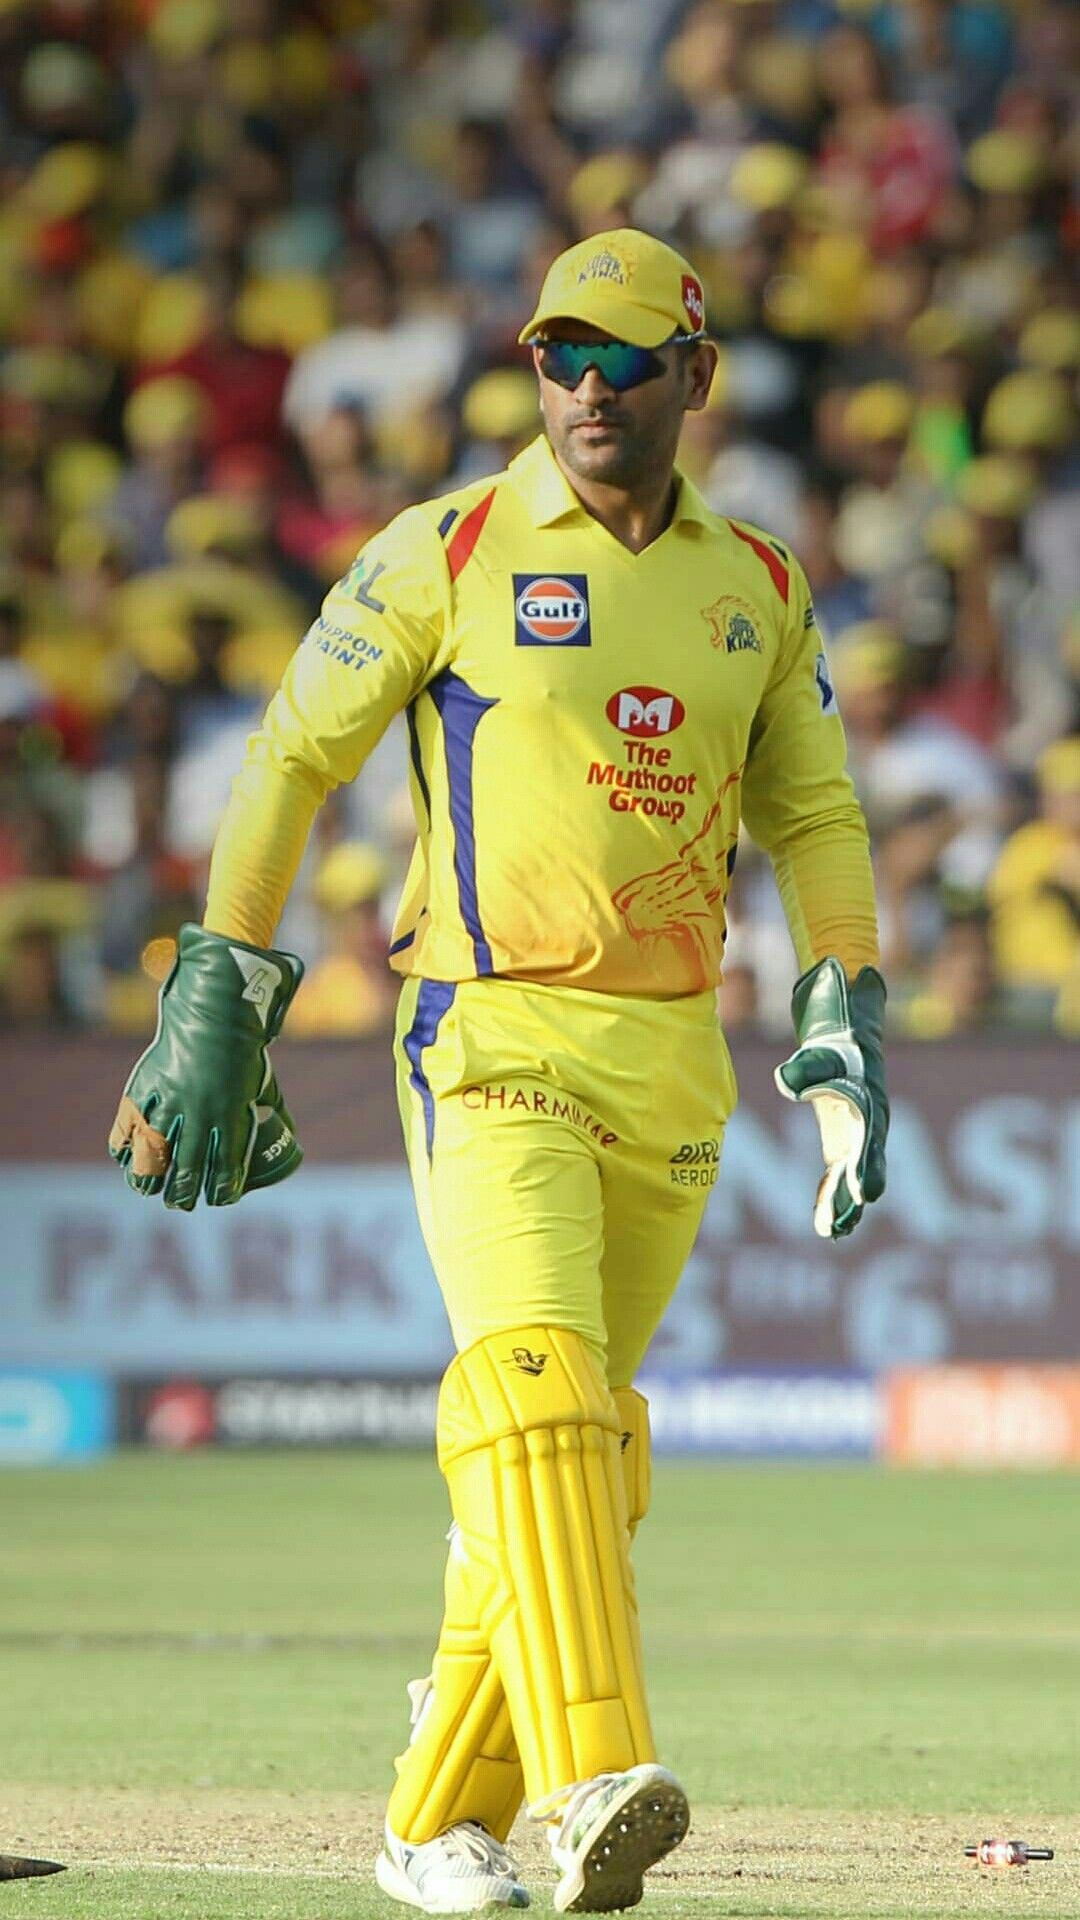 Ms Dhoni Csk Wallpapers Top Free Ms Dhoni Csk Backgrounds Wallpaperaccess